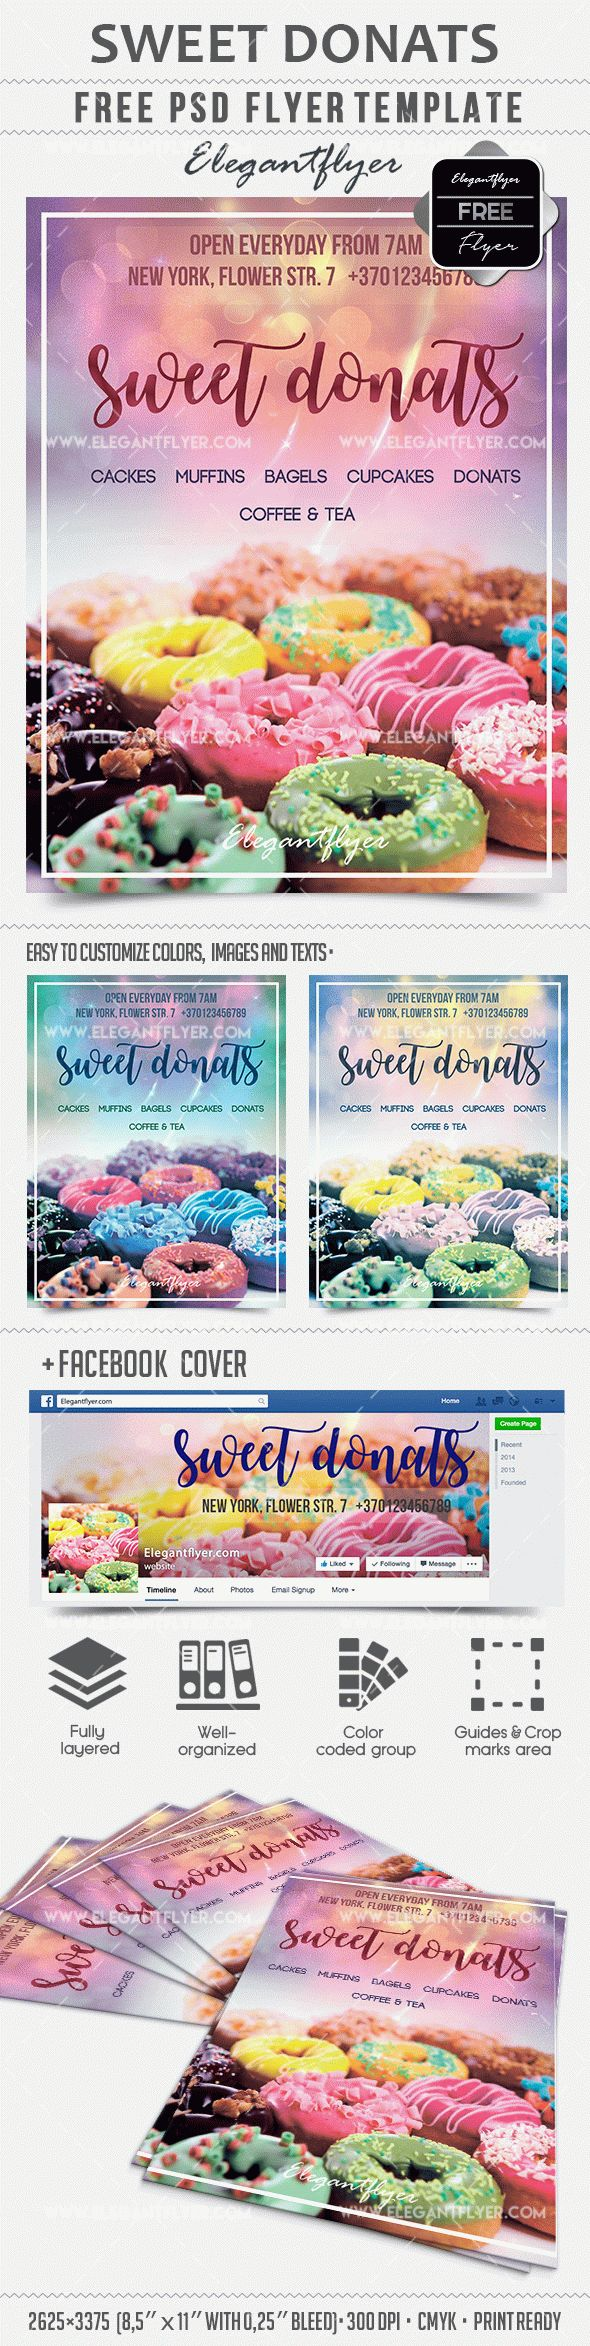 Sweet Donats – Free PSD Template + Facebook cover